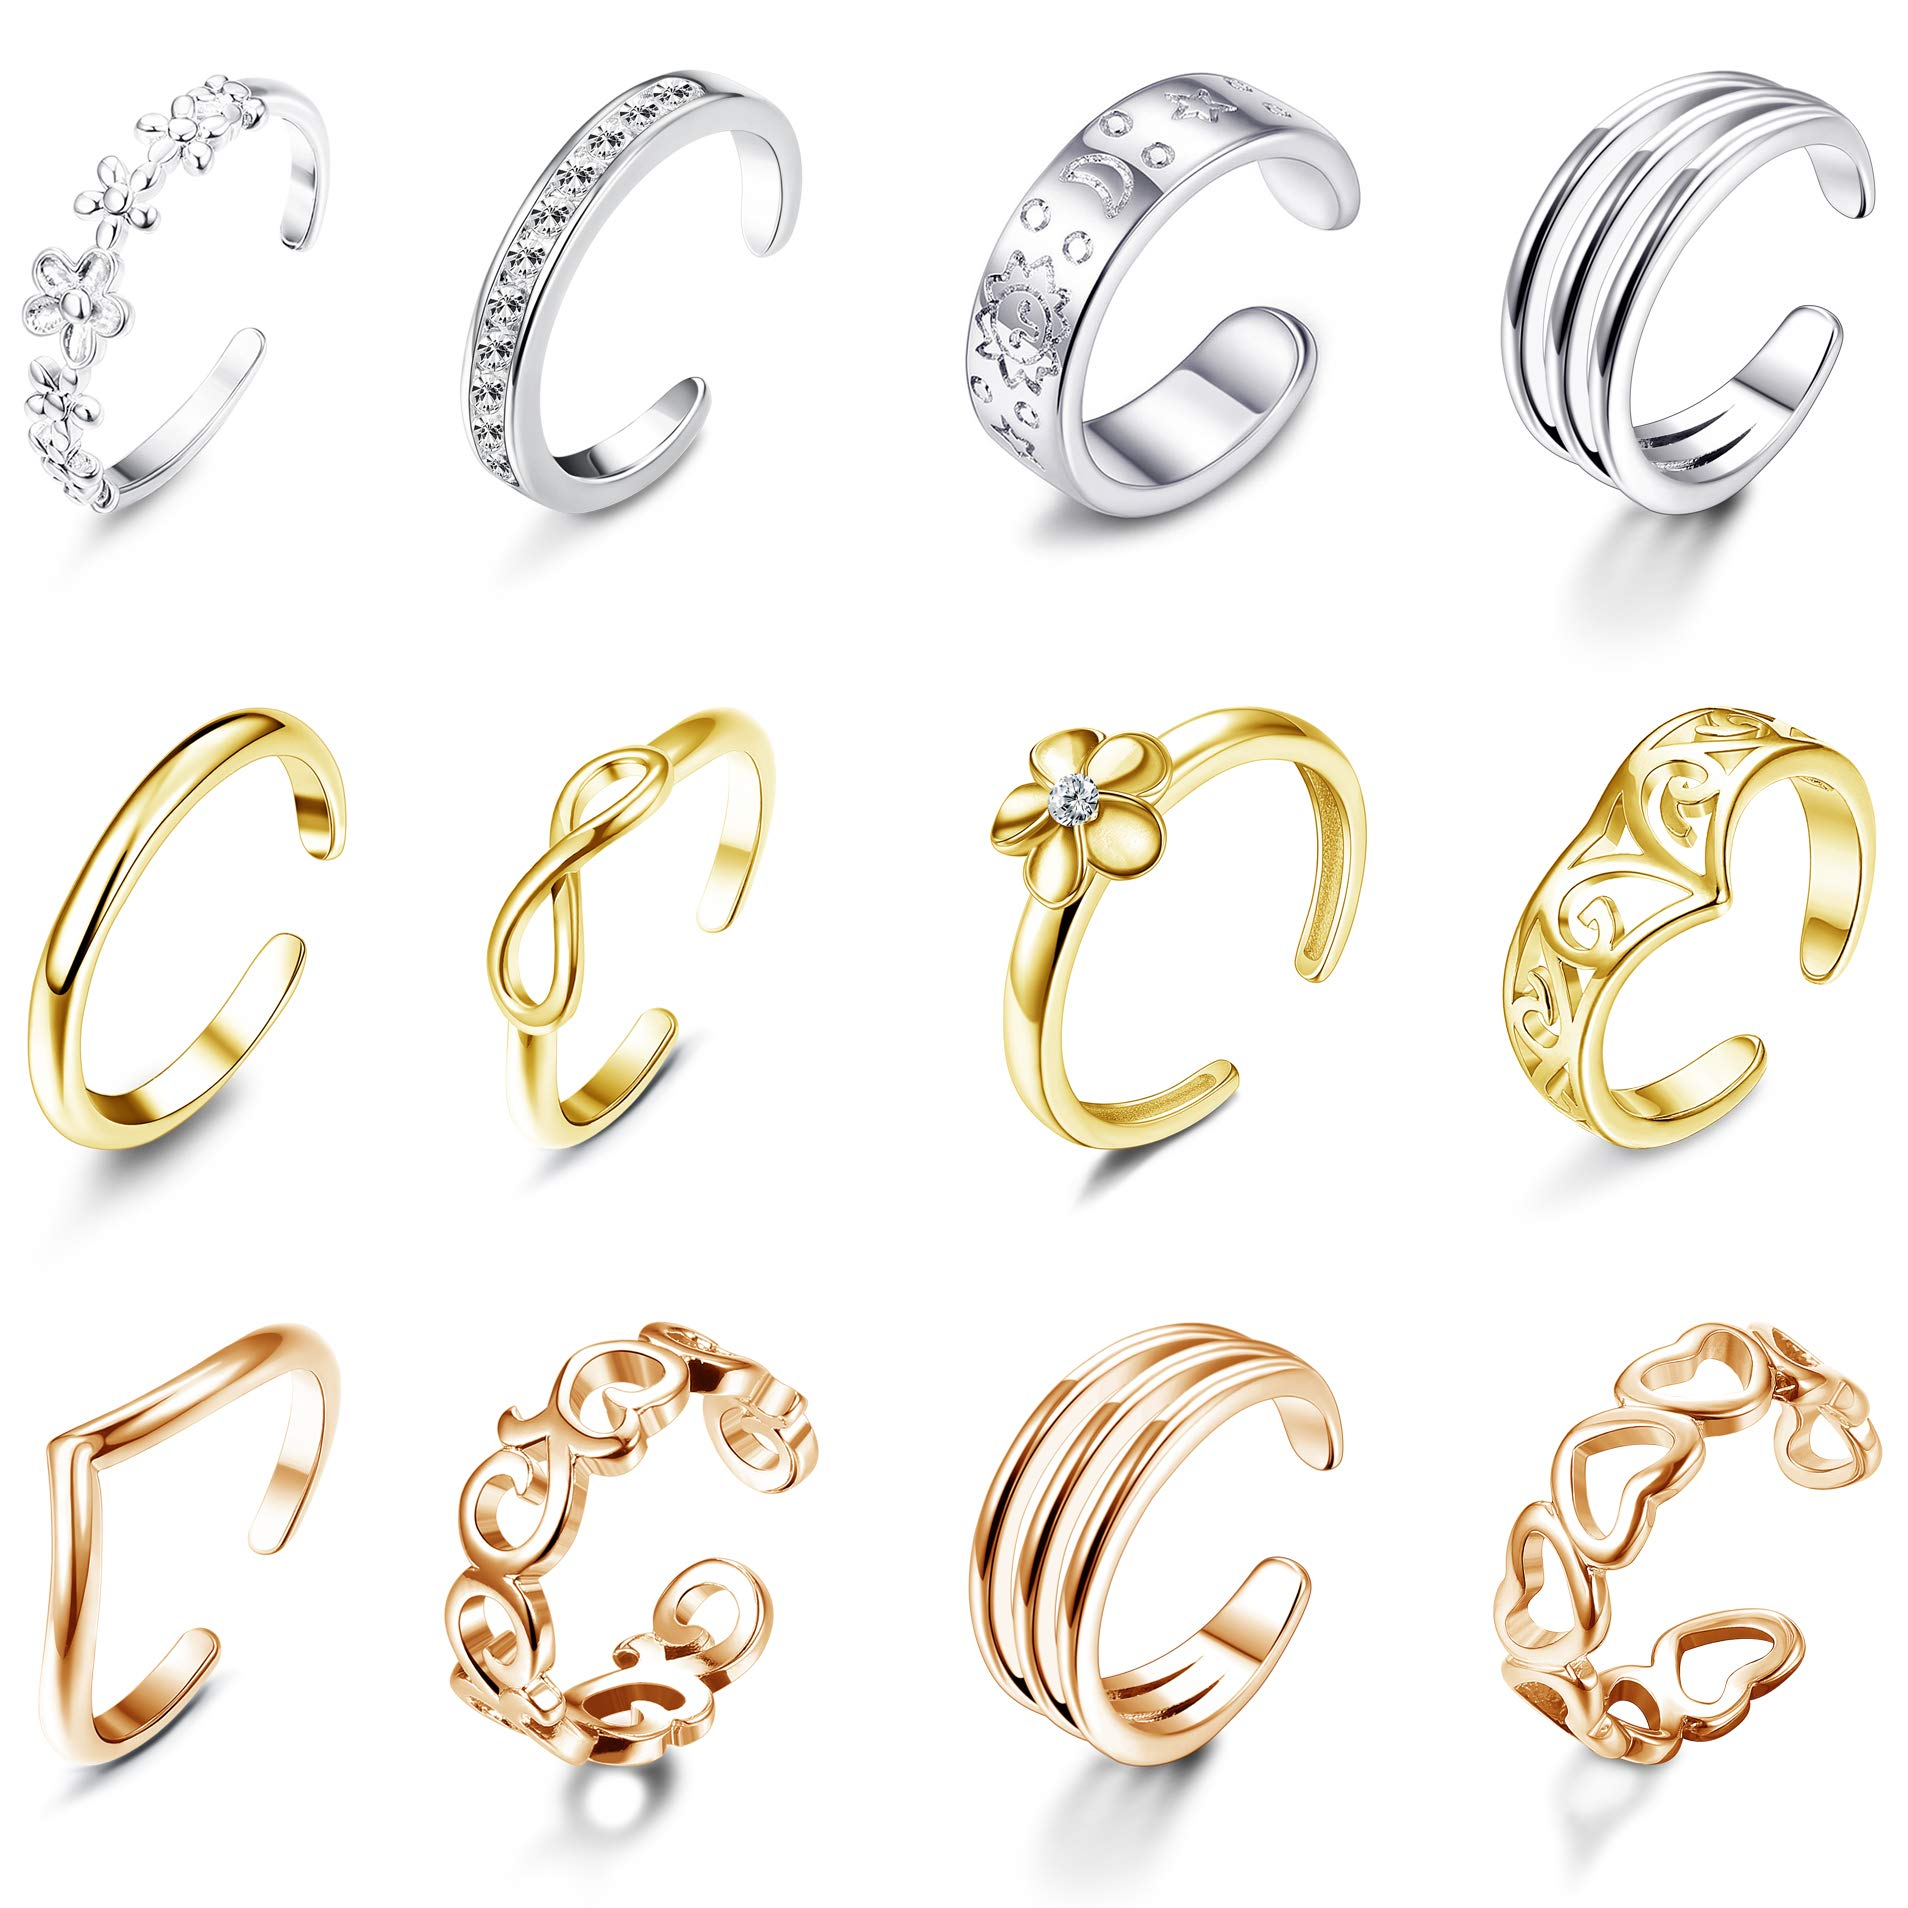 Jstyle 12Pcs Adjustable Toe Rings for Women Girls Various Types Band Open Toe Ring Set Women Summer Beach Jewelry by Jstyle